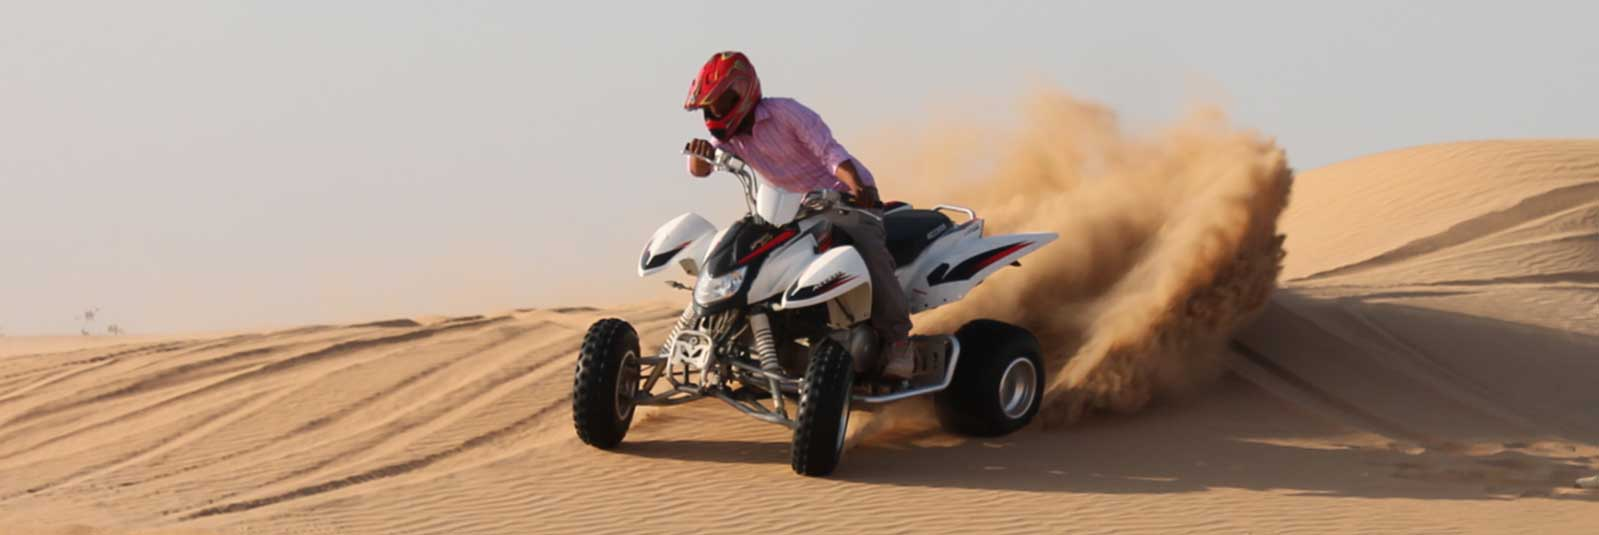 Quad-Bike-Ride-2